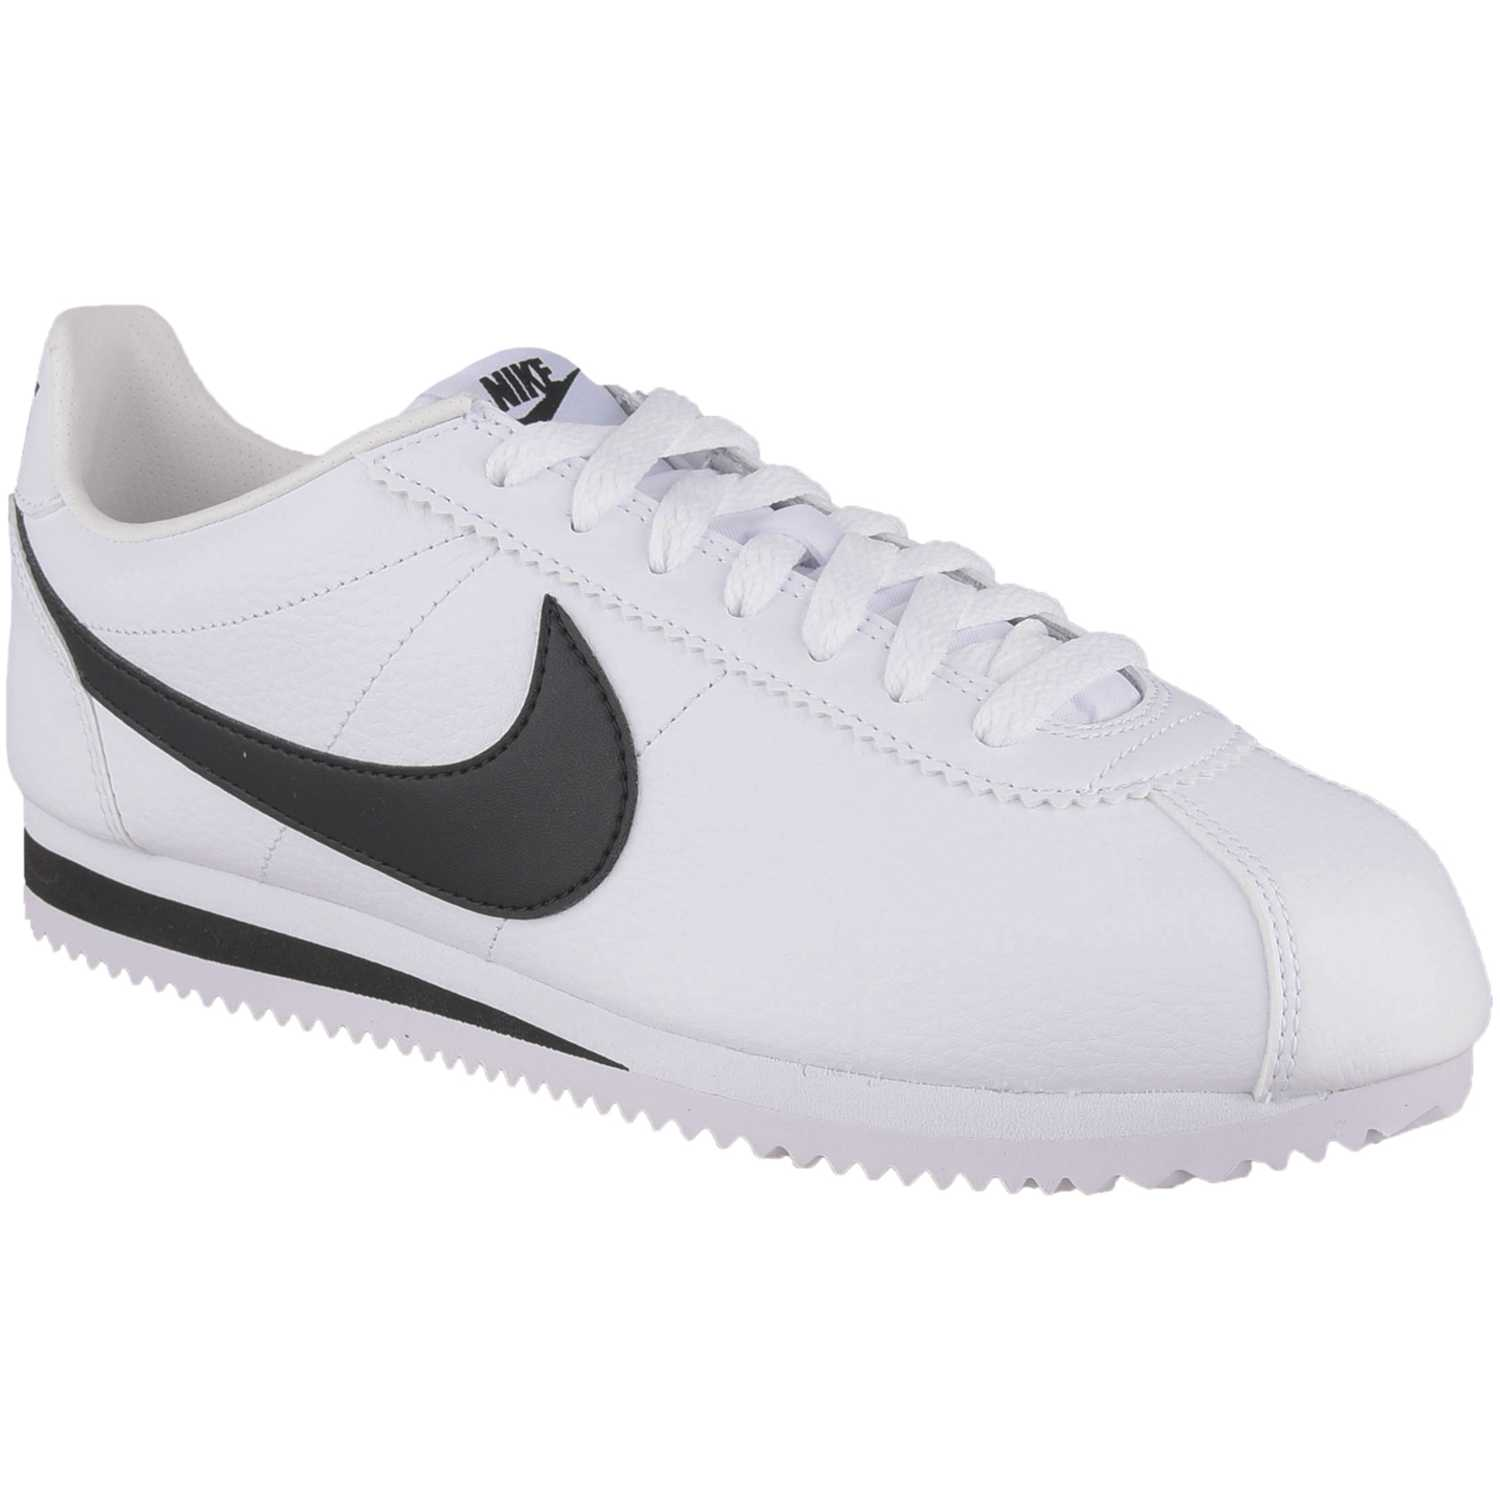 uk availability 42869 818b0 Zapatilla de Hombre Nike Blanco   negro classic cortez leather